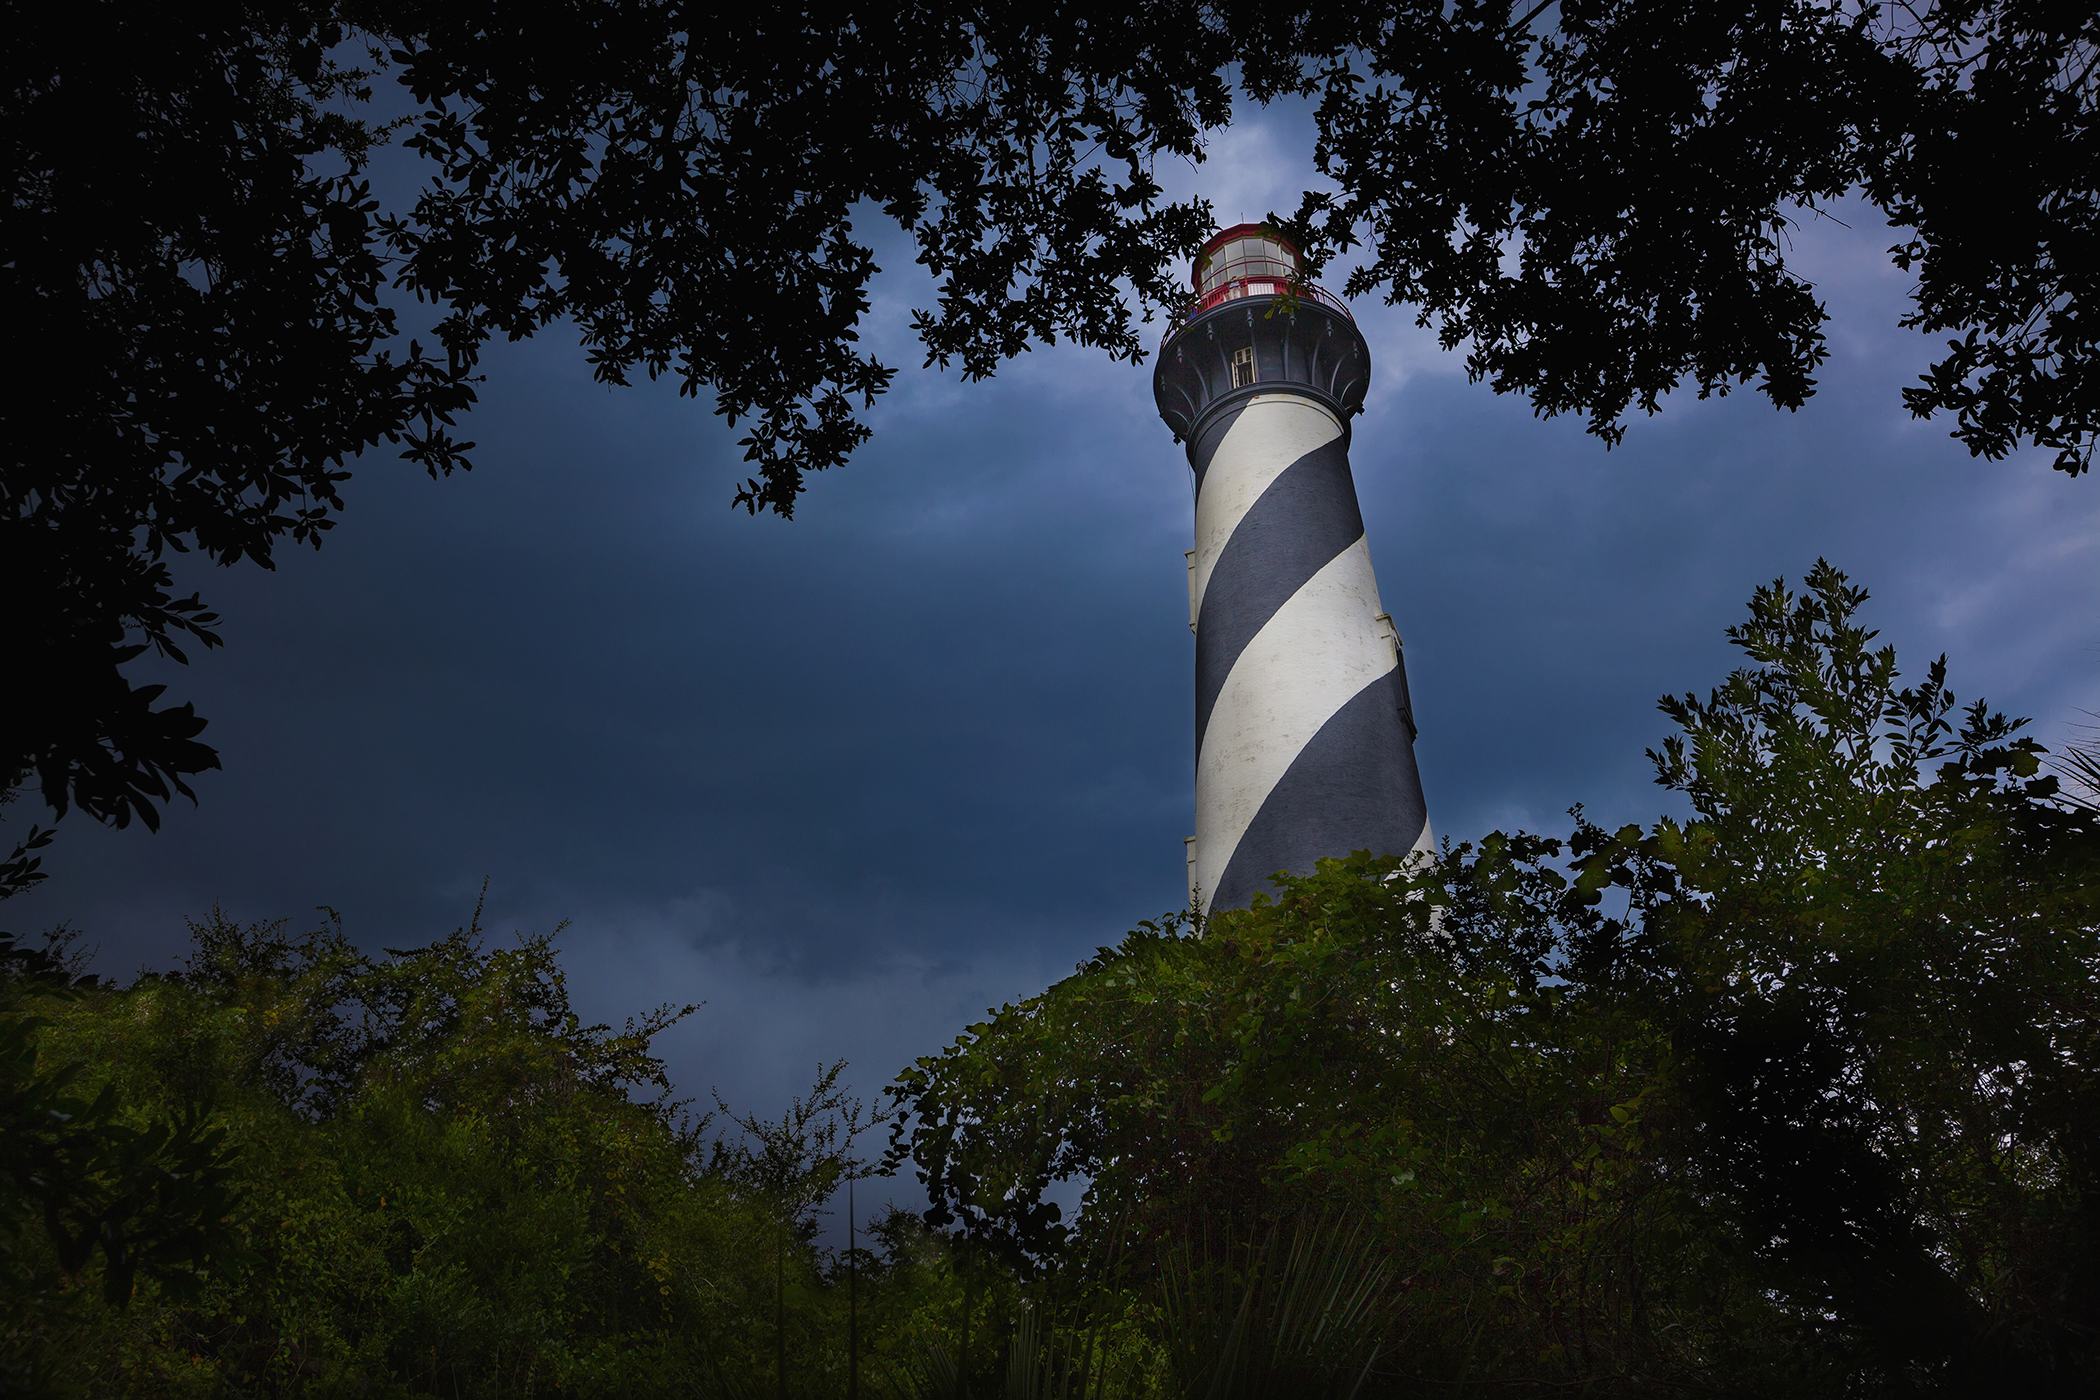 Lighthouse viewed through the trees and vegetation with dark and moody clouds in the sky; St. Augustine, Florida